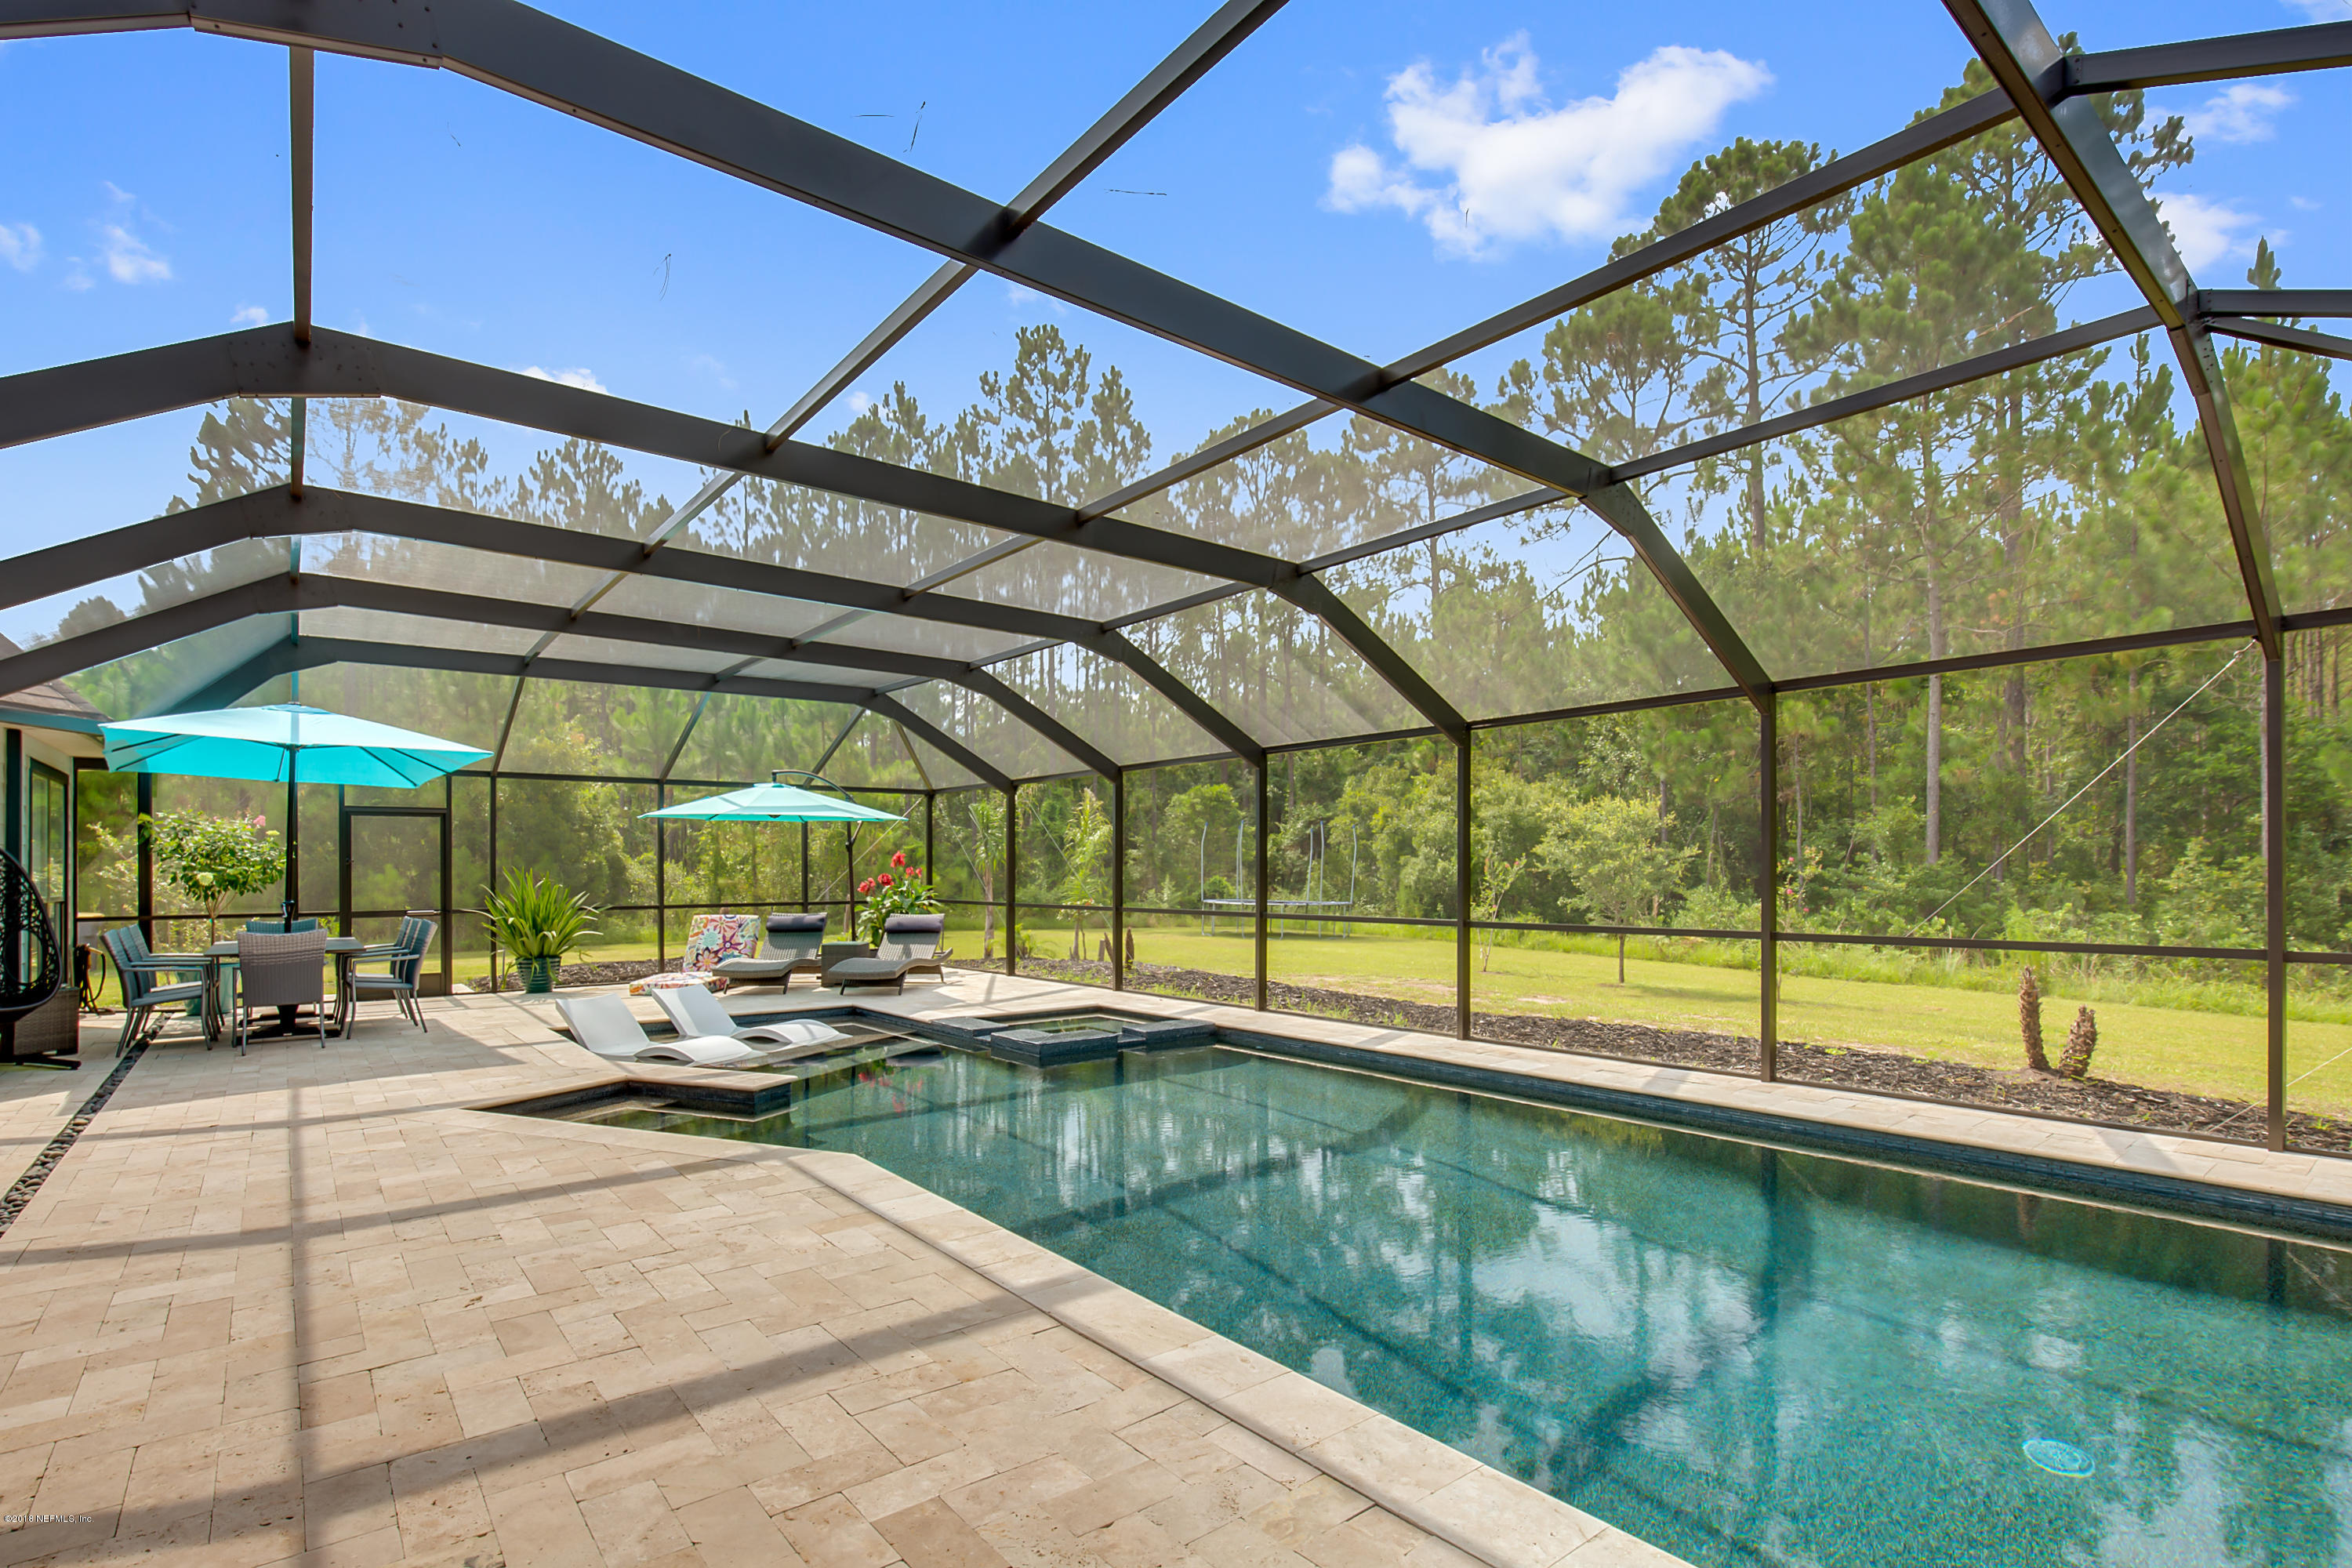 11380 SADDLE CLUB, JACKSONVILLE, FLORIDA 32219, 4 Bedrooms Bedrooms, ,3 BathroomsBathrooms,Residential - single family,For sale,SADDLE CLUB,947343